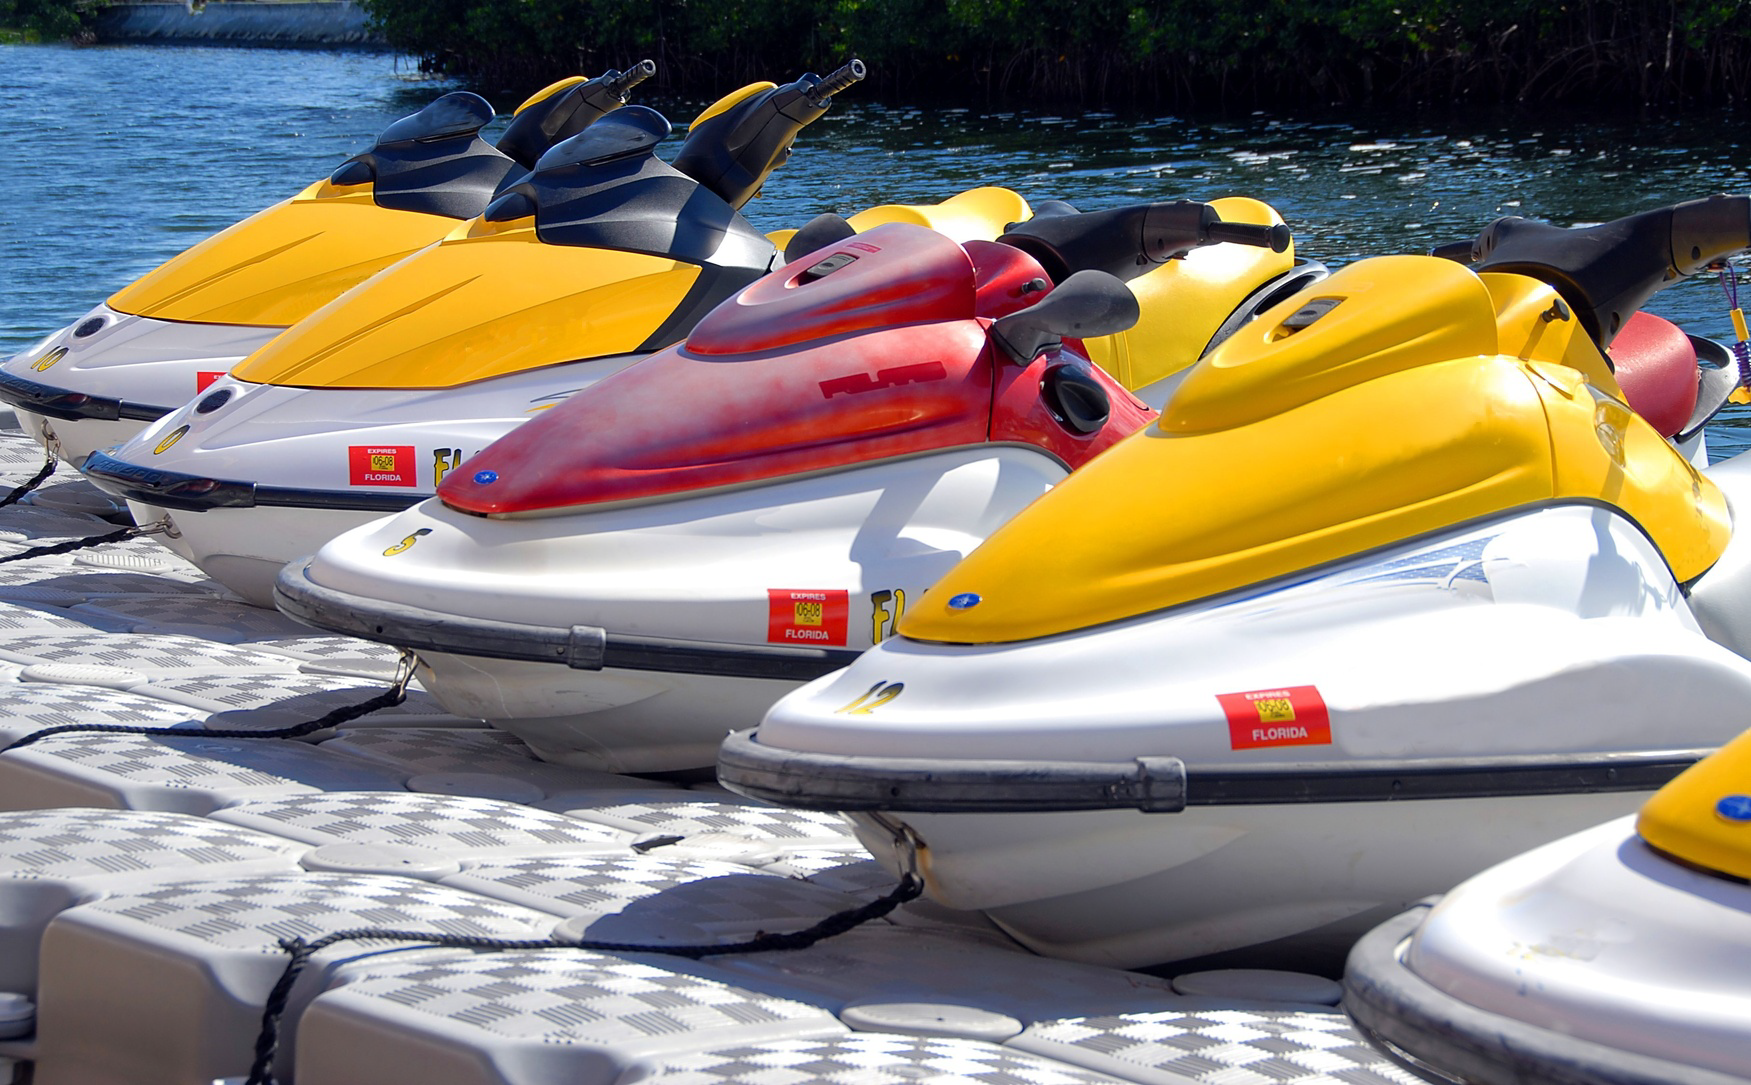 Welcome To Clearwater Jetski Tours And Rentals Clearwater Beach Florida Jet Ski Rentals Ski Touring